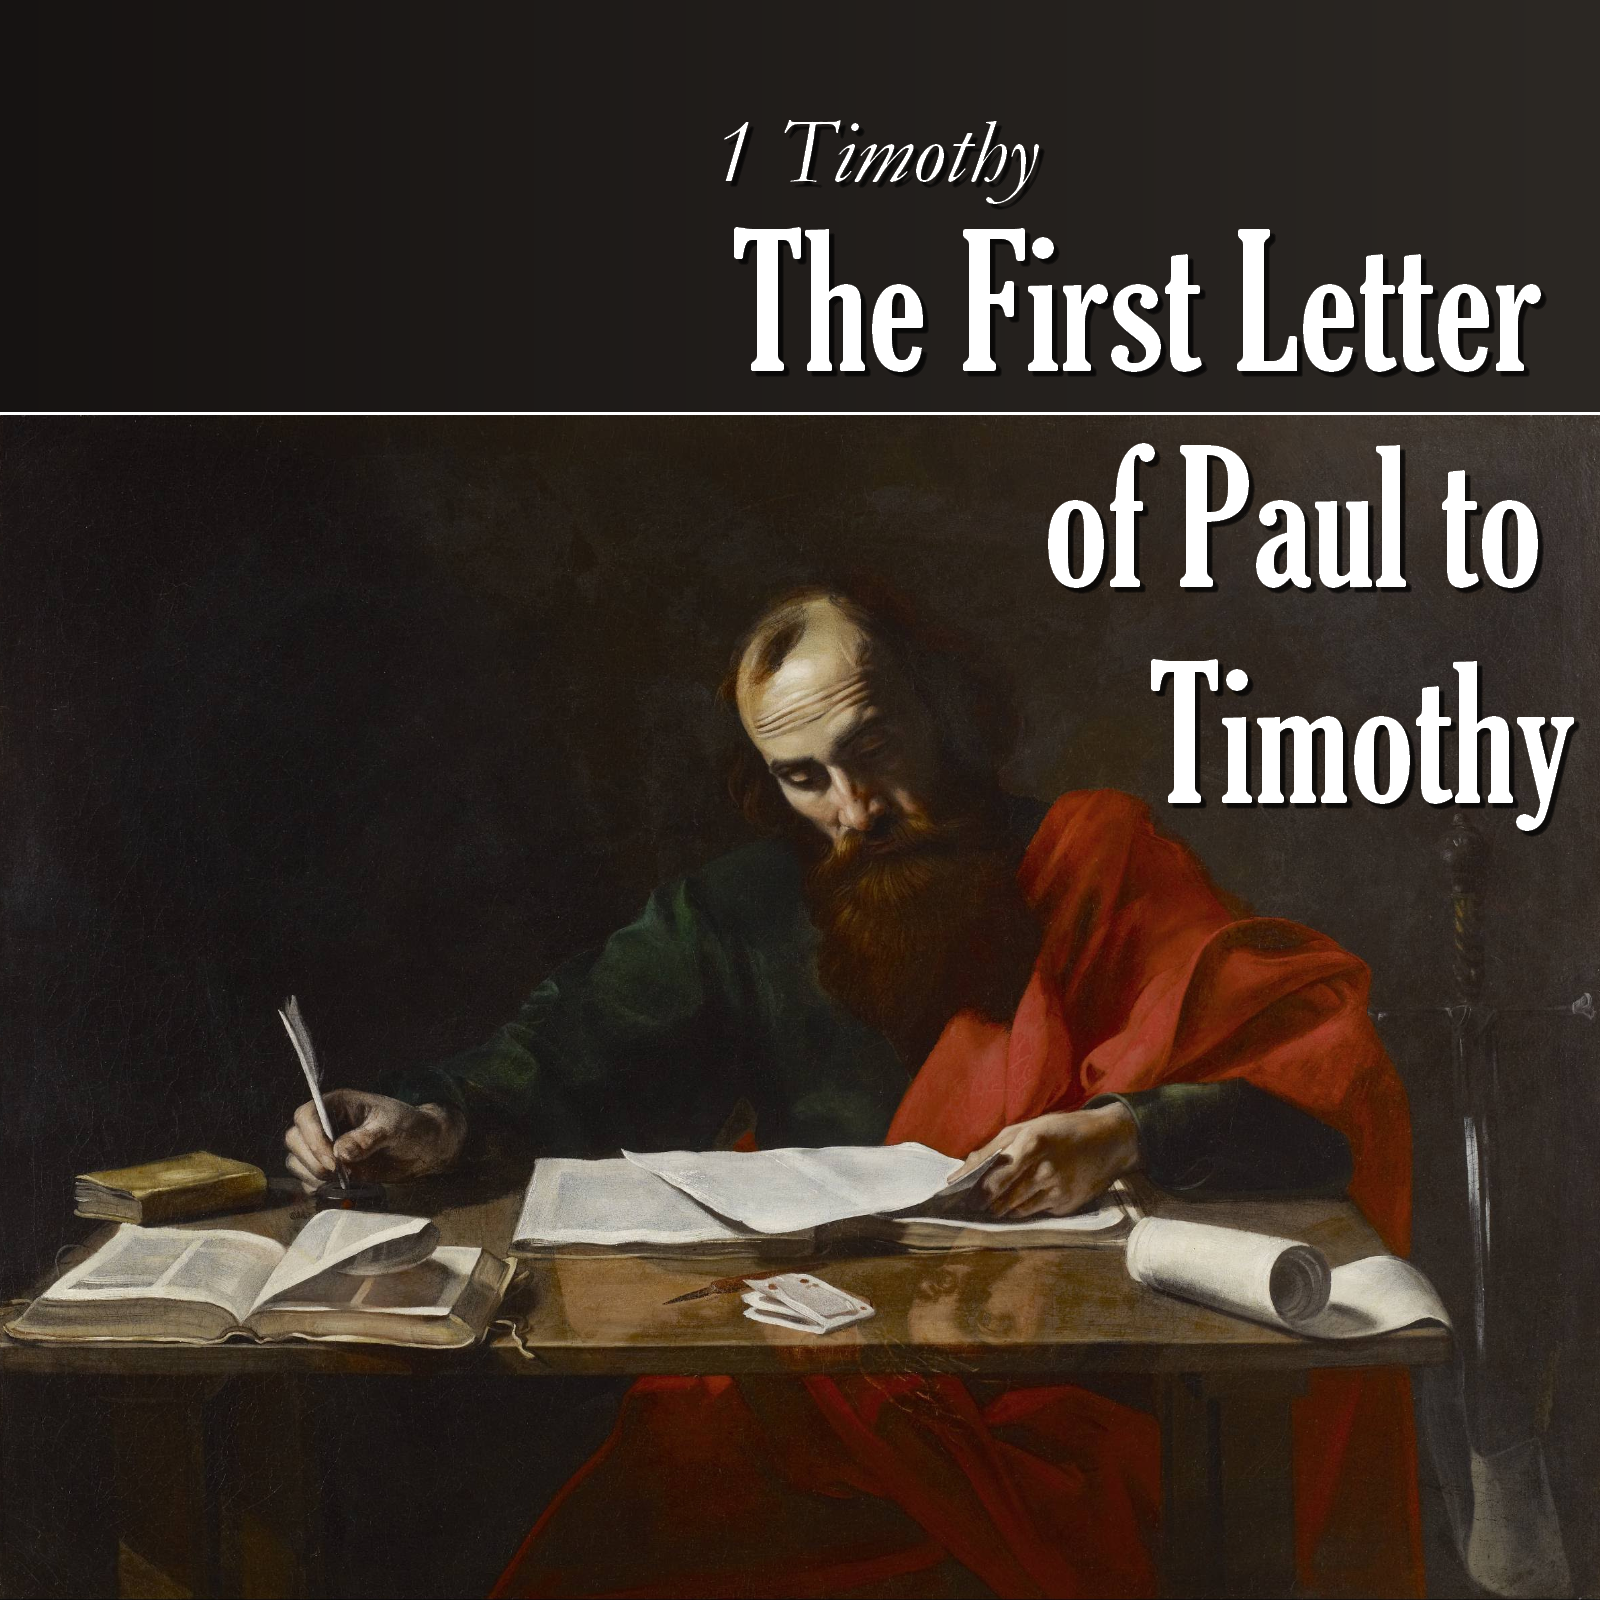 1 timothy 31 13 essay This letter lays the foundation for ordaining elders (1 timothy 3:1-7), and provides guidance for ordaining people into offices of the church (1 timothy 3:8-13) in essence, 1 timothy is a leadership manual for church organization and administration.